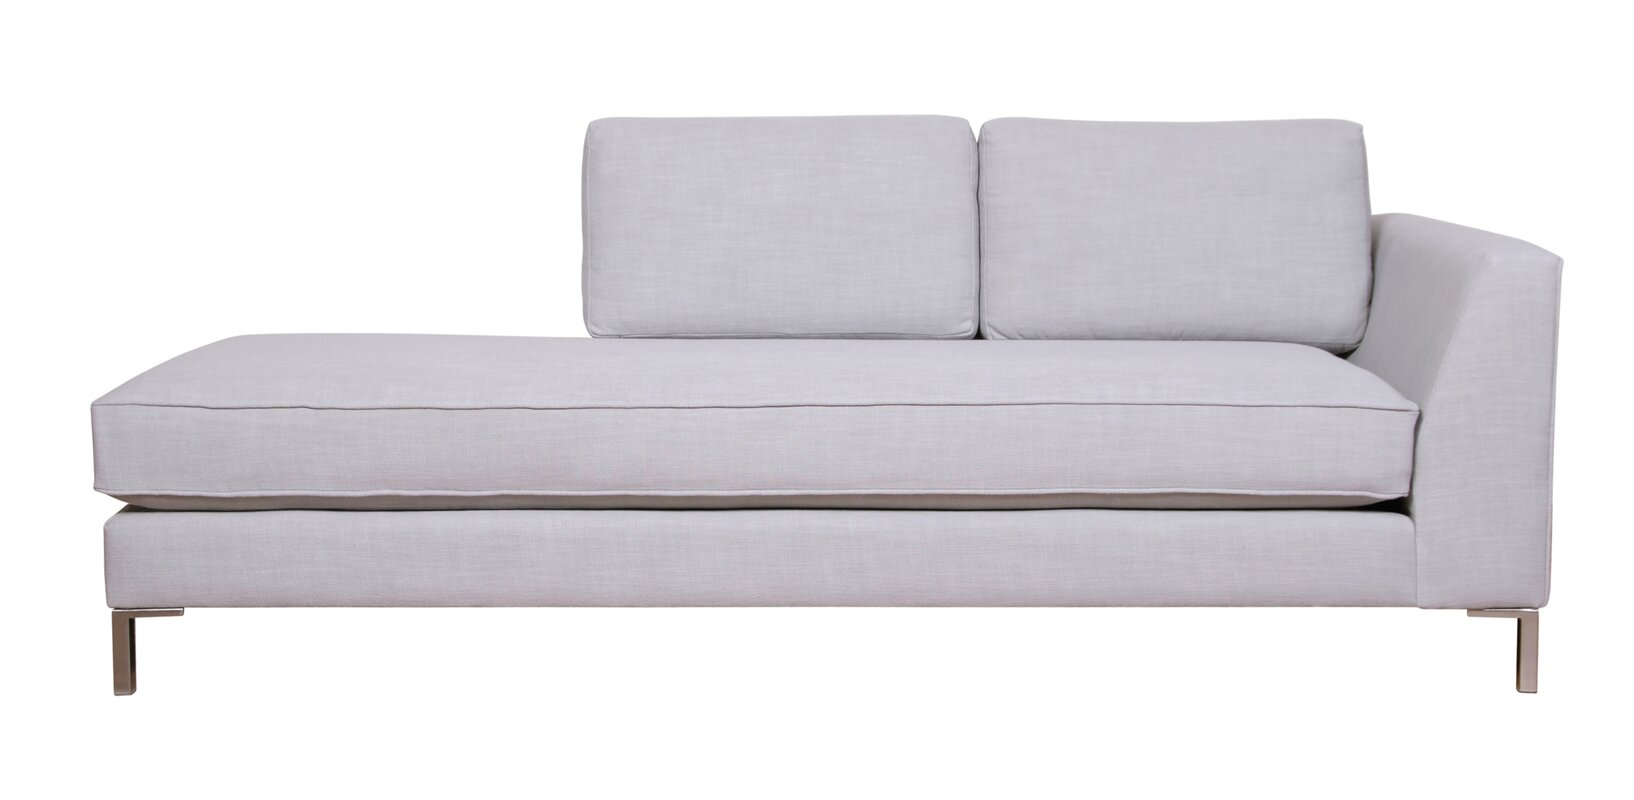 modern chaise lounges  allmodern - st george chaise lounge